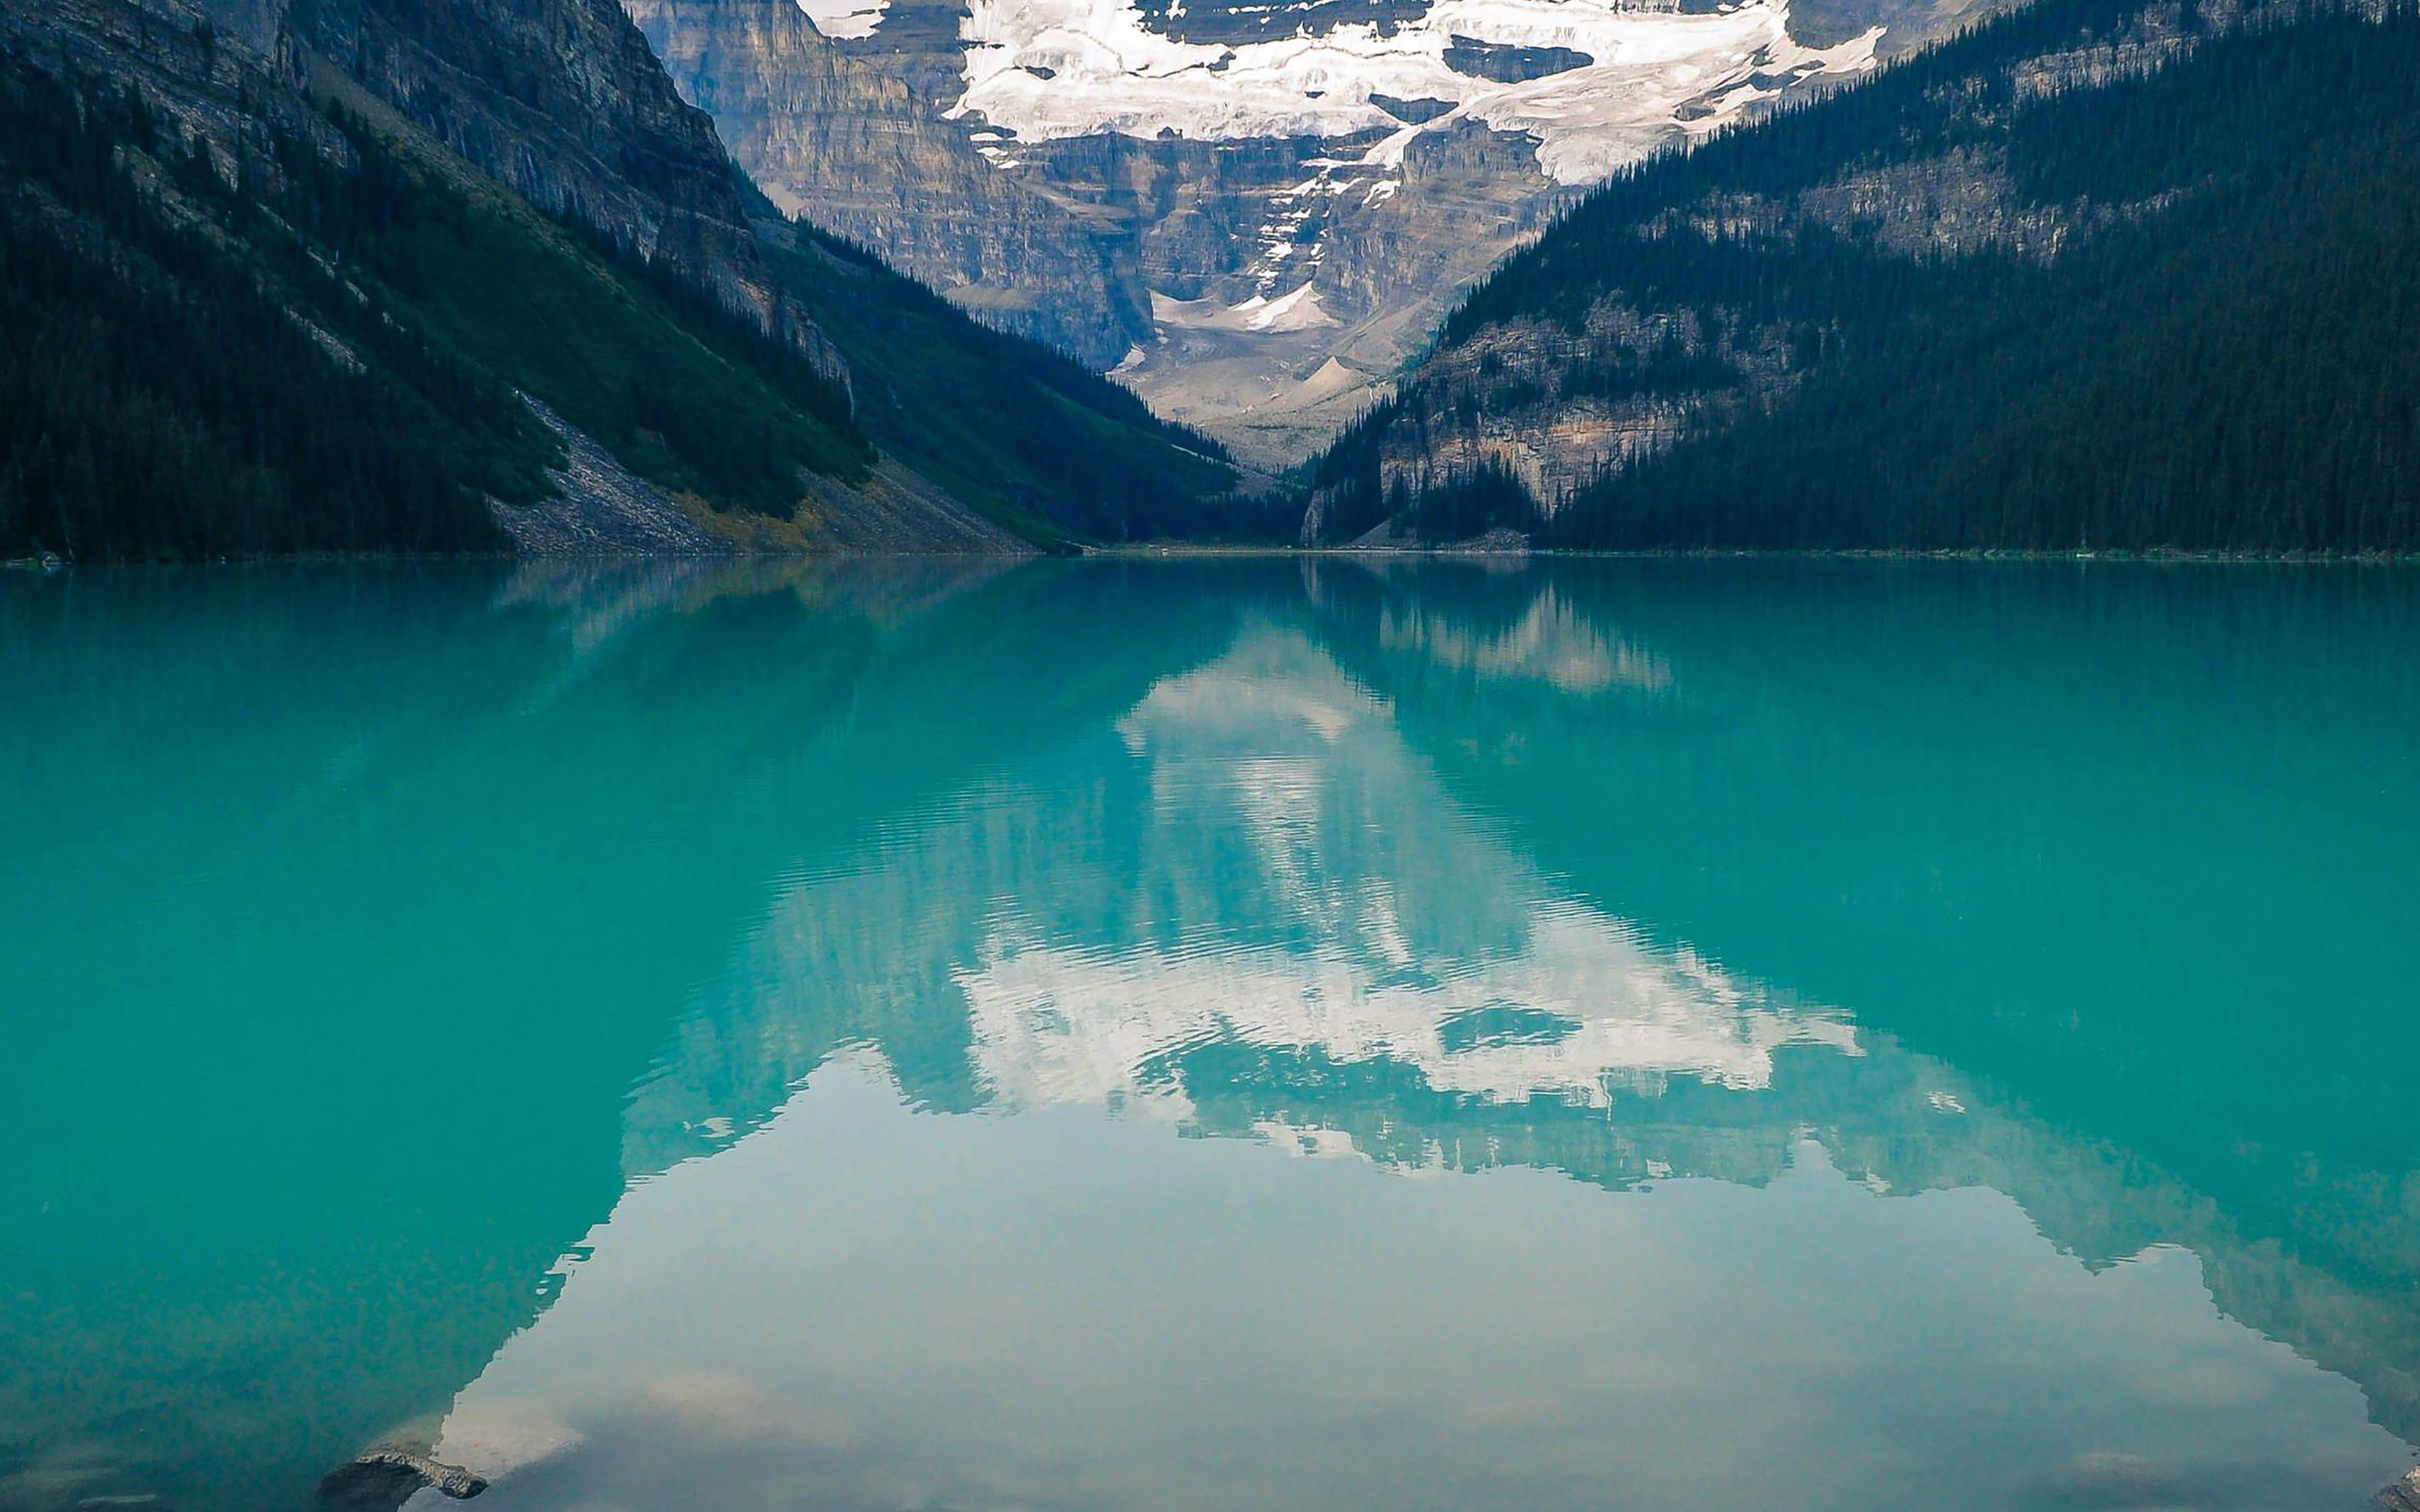 4k Iphone Wallpapers: Mk48-canada-lake-louise-green-water-nature